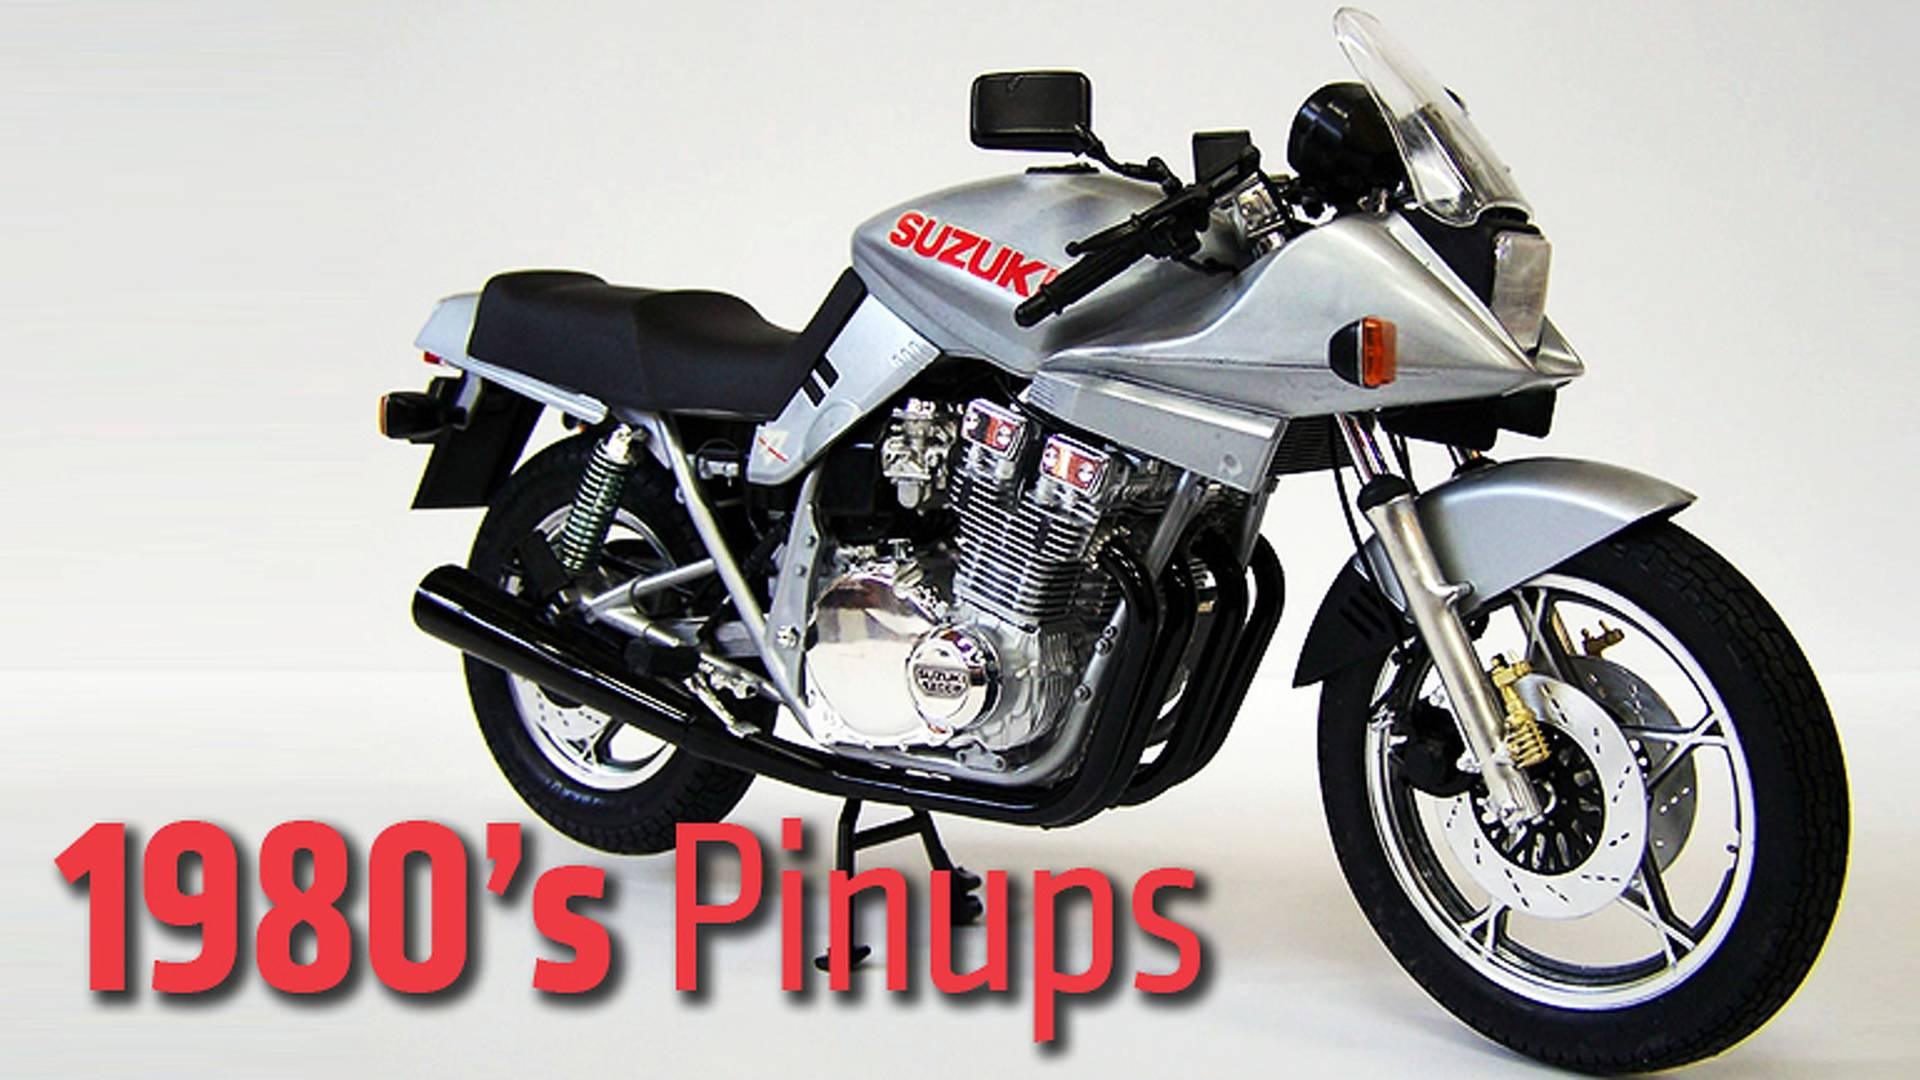 1980s pinups the most beautiful motorcycles of the decade